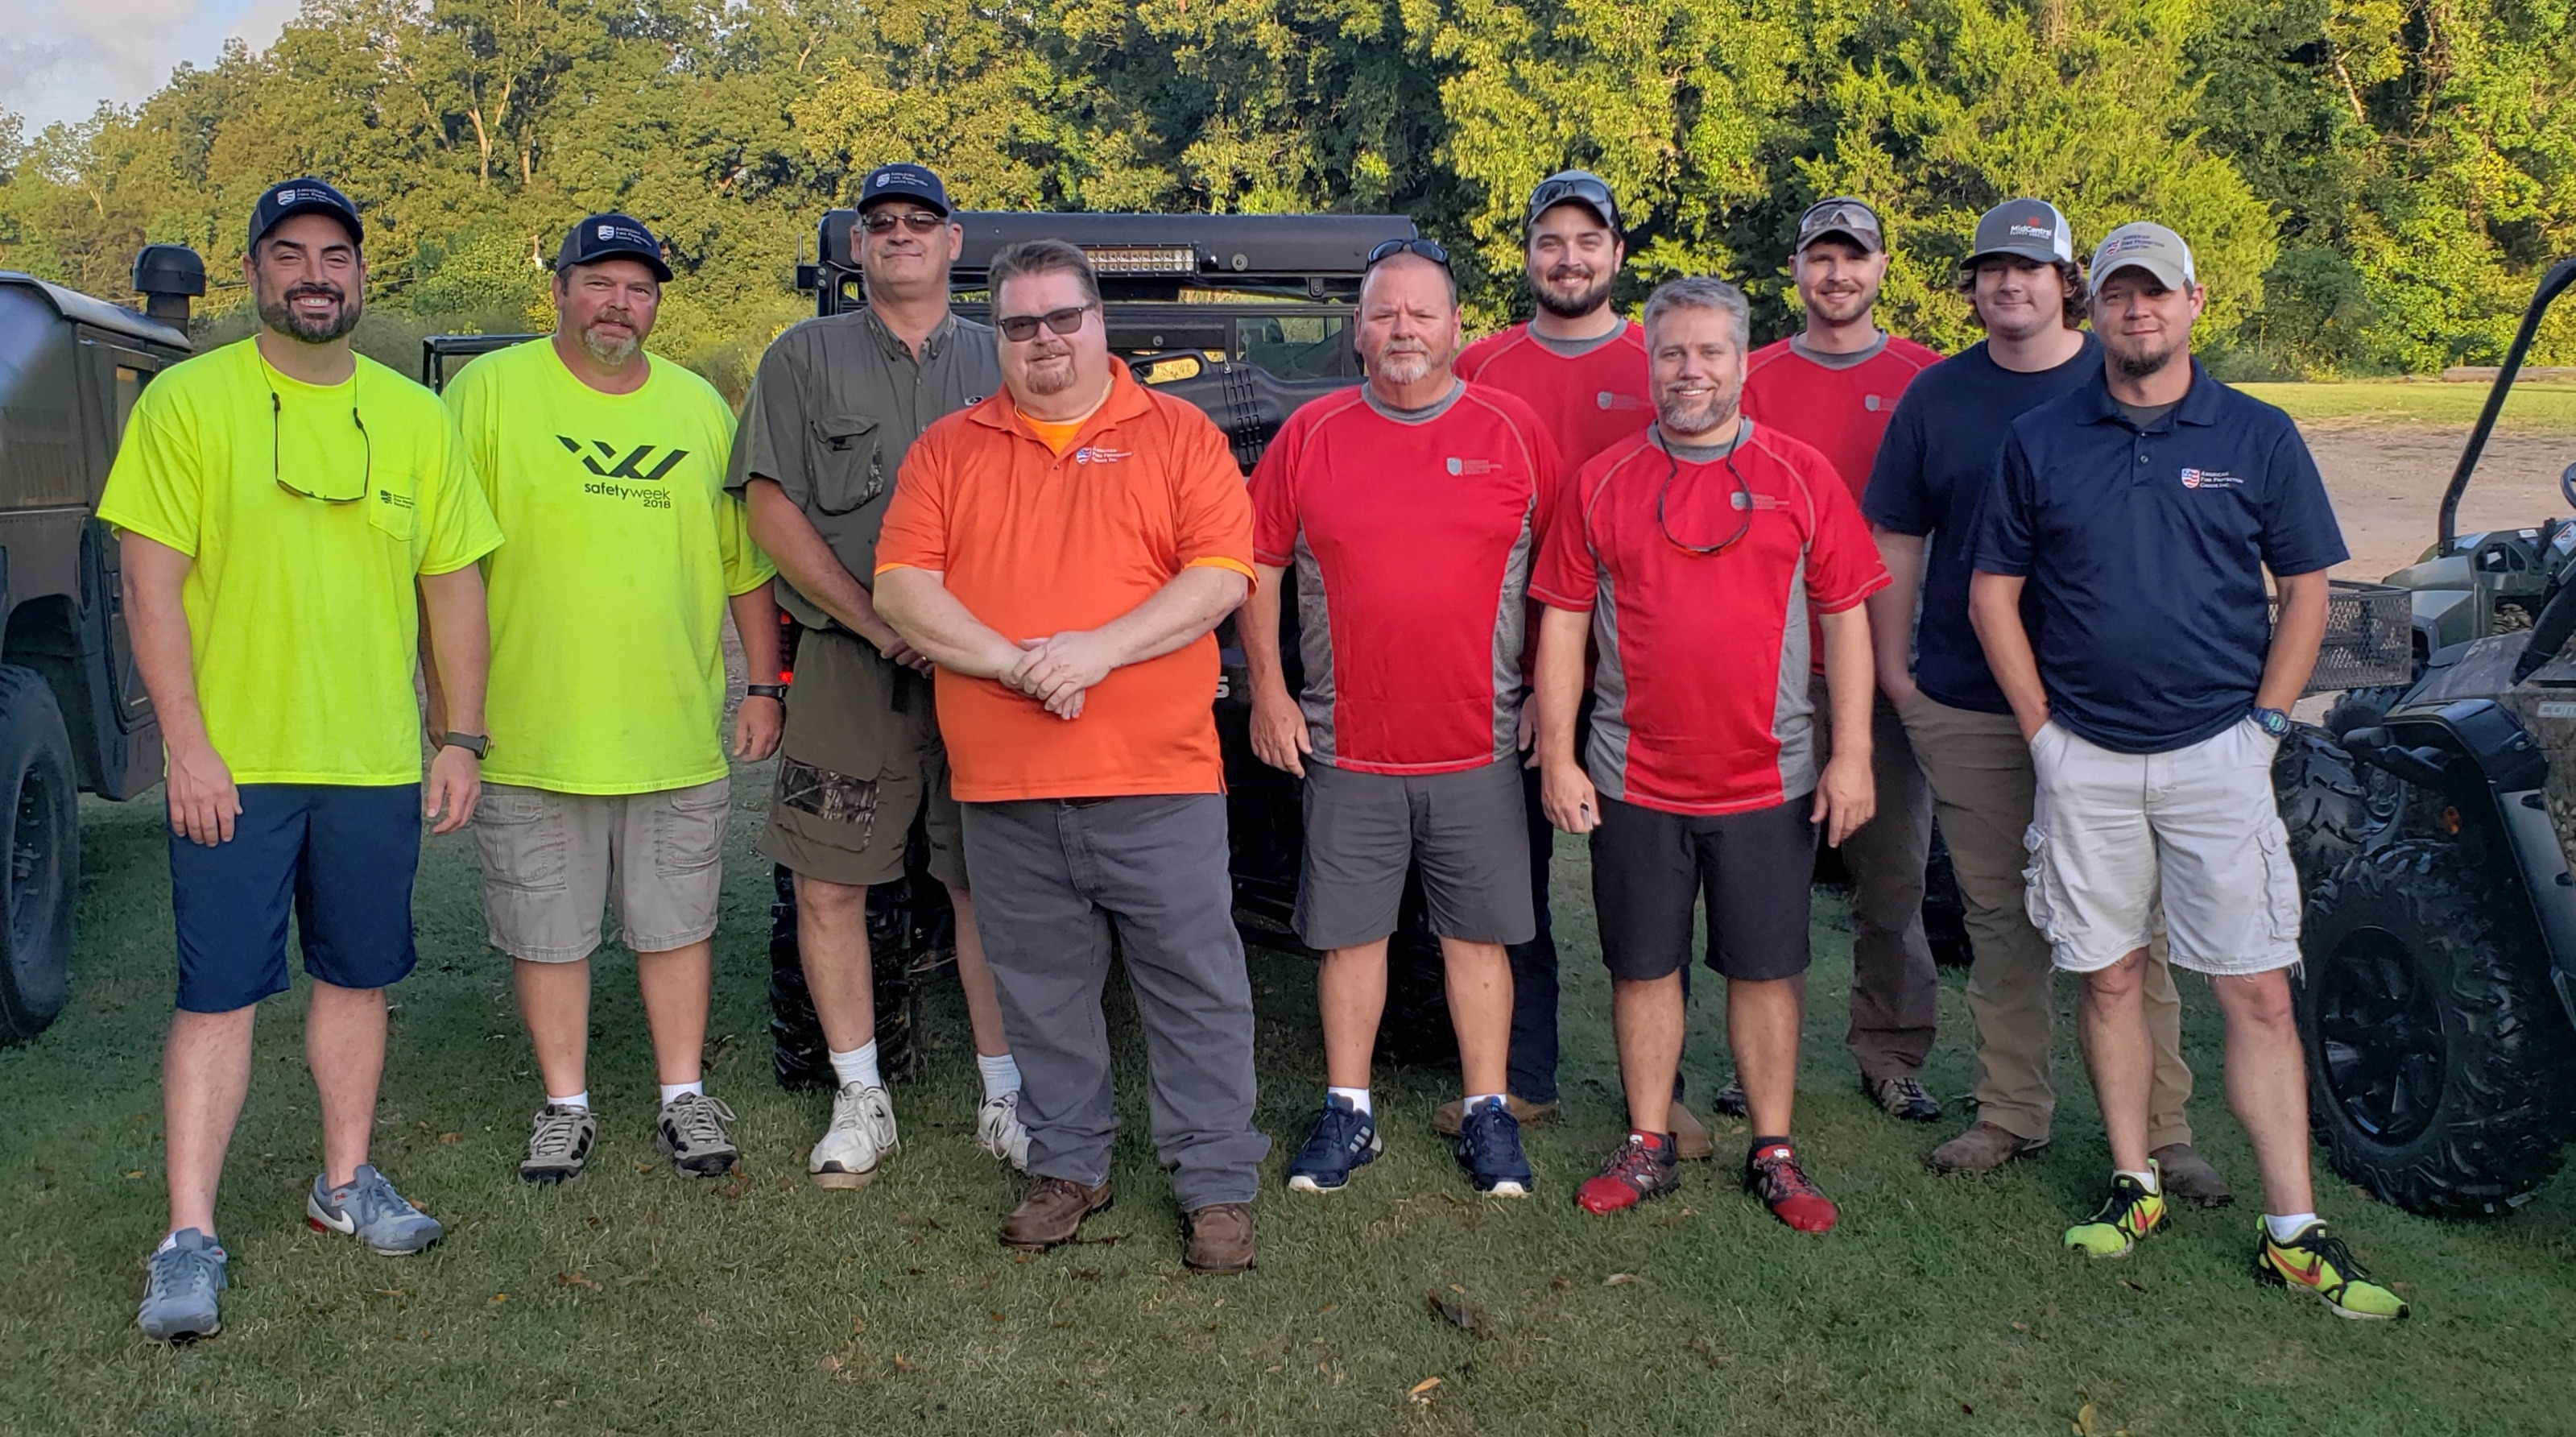 AFPG Monroe and Little Rock Teams Come Together to Raise $6,500 for a Louisiana Children's Home